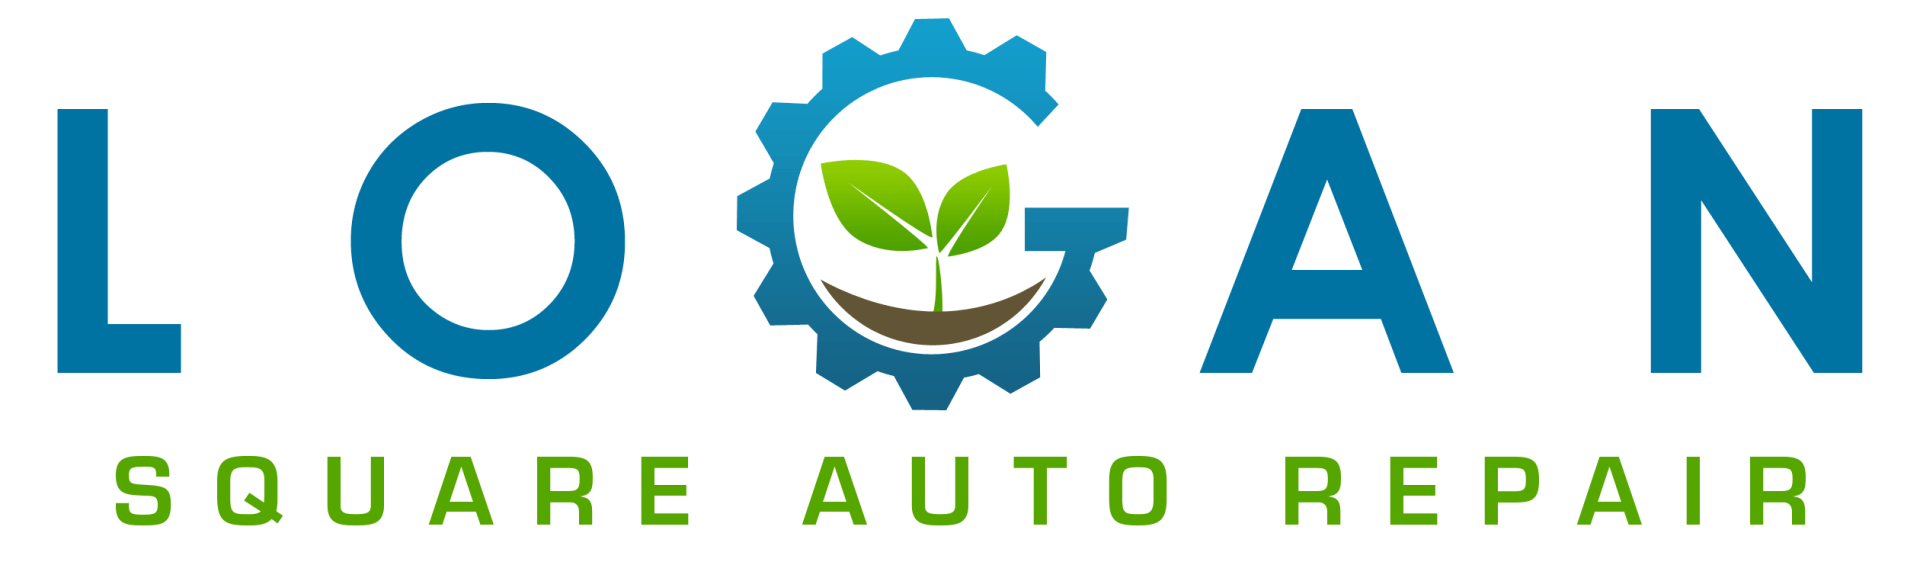 Auto Repair Chicago >> Auto Repair Chicago Car Brake Repair Chicago Auto Maintenance